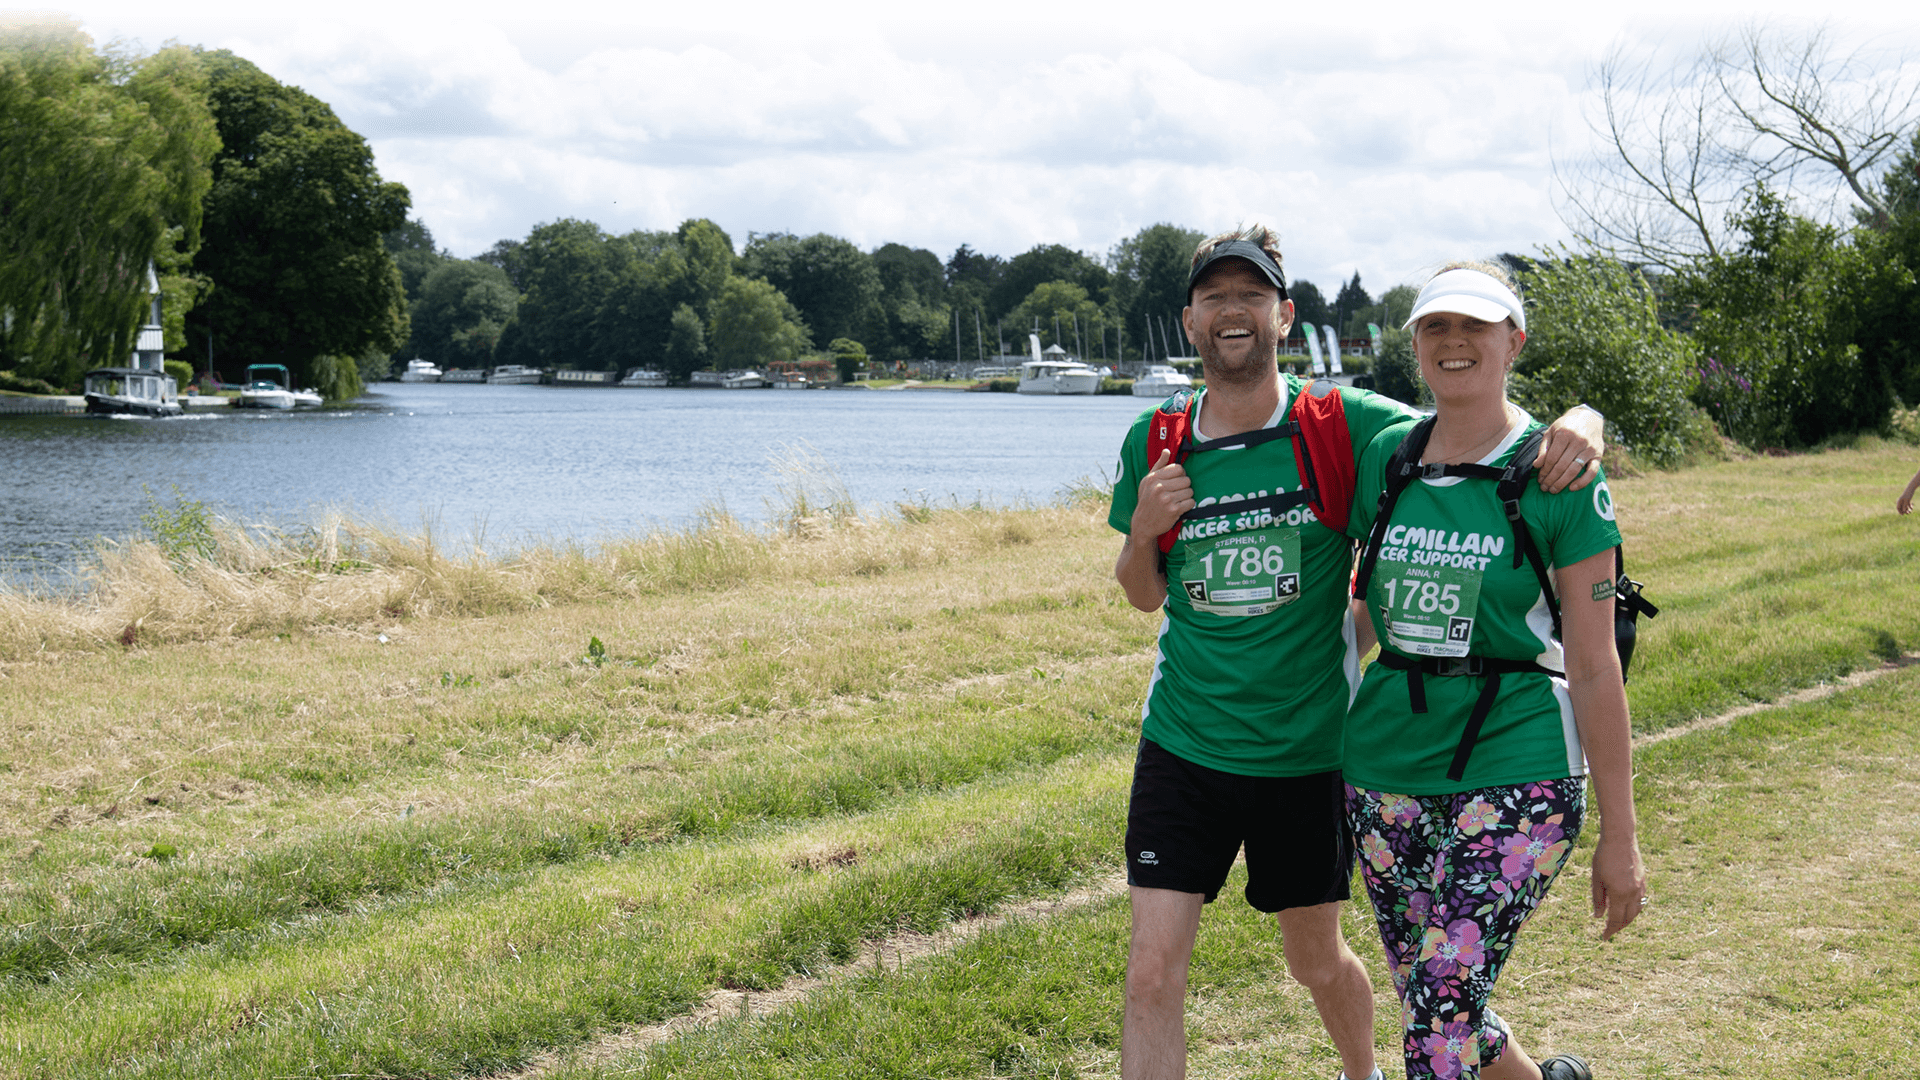 A man and a woman walking along a grassy section of the Thames path next to the Thames